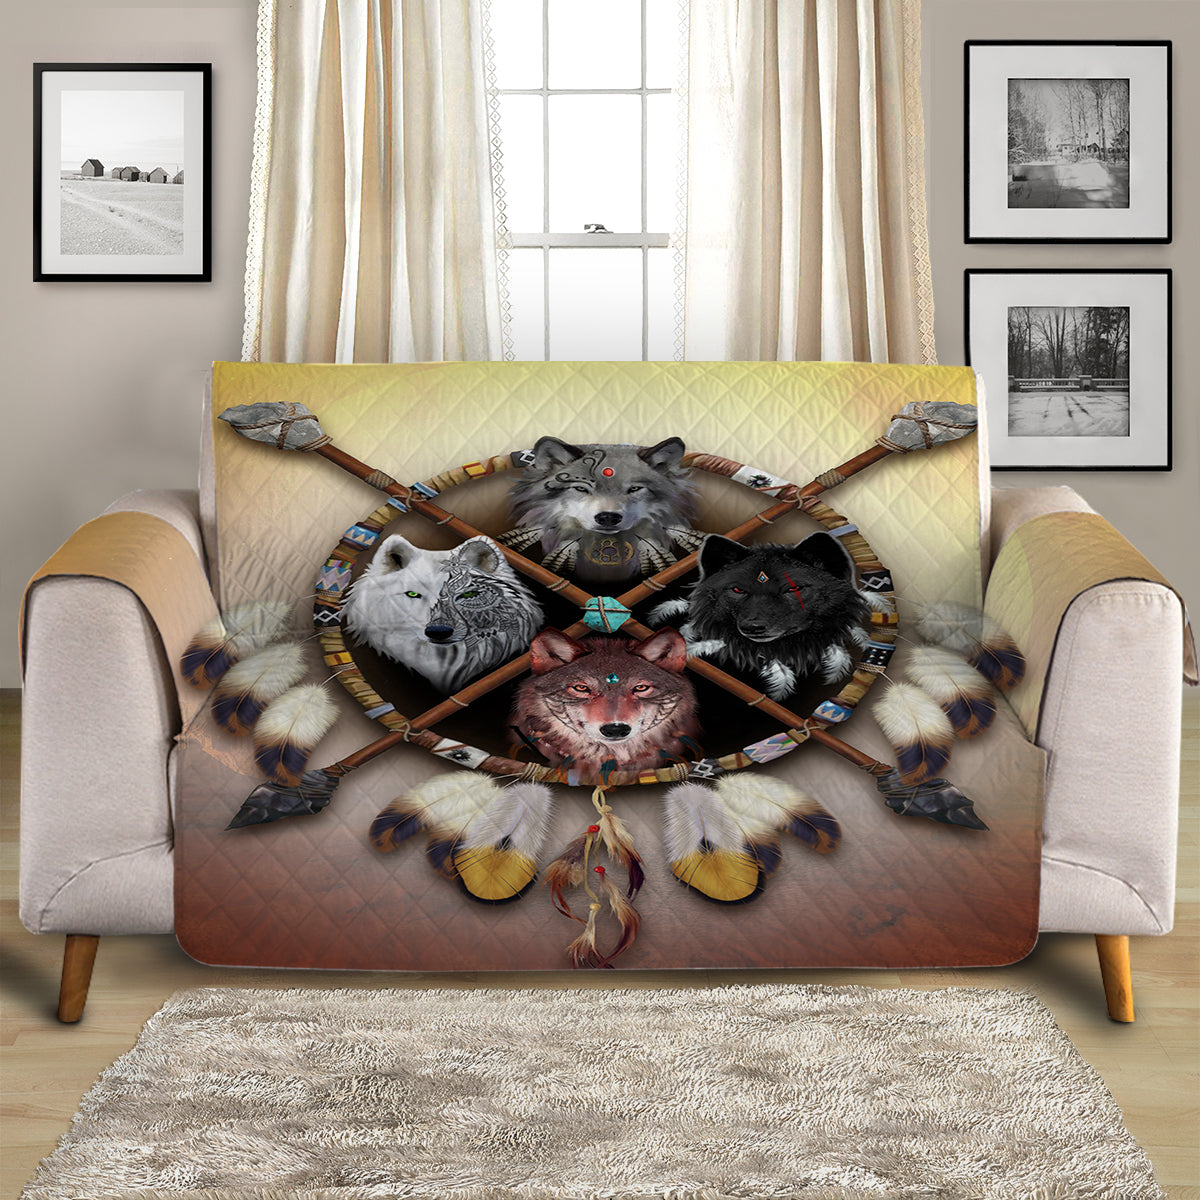 4 Wolves Warrior Light Quilted Cover for Sofa, Chairs, Futons & Recliners